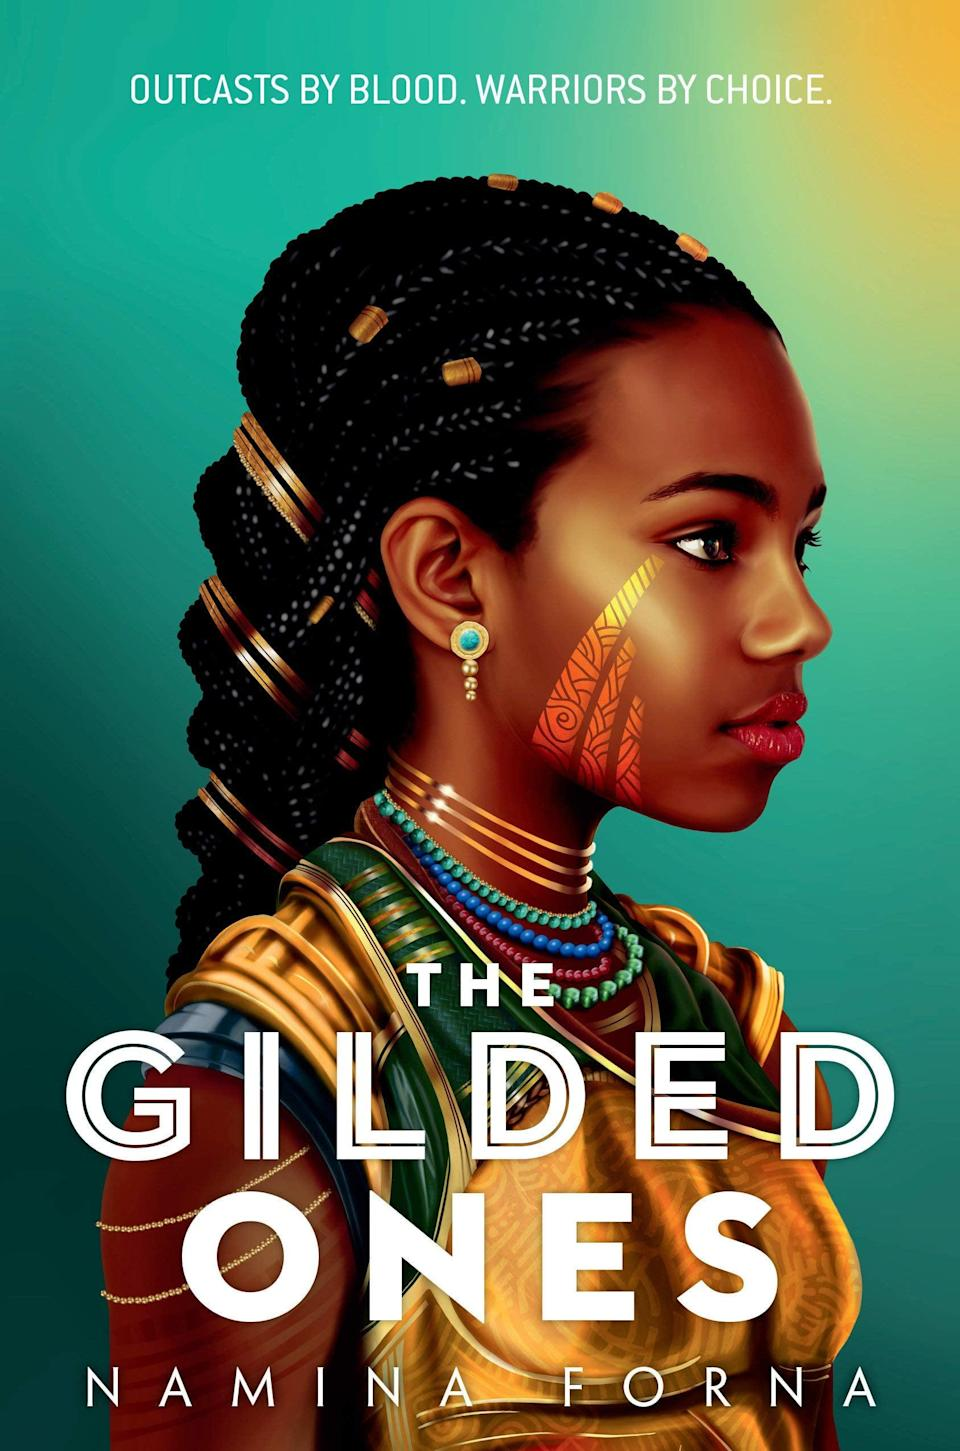 <p>Namina Forna introduces readers to an intricate, West African-inspired fantasy world in <span><strong>The Gilded Ones</strong></span>. At 16, Deka's fate seems to be sealed when her blood runs gold, marking her as impure, but then a mysterious woman shows up in her village offering her the chance to become a warrior in an army full of girls just like her.</p> <p><em>Out Feb. 9</em></p>